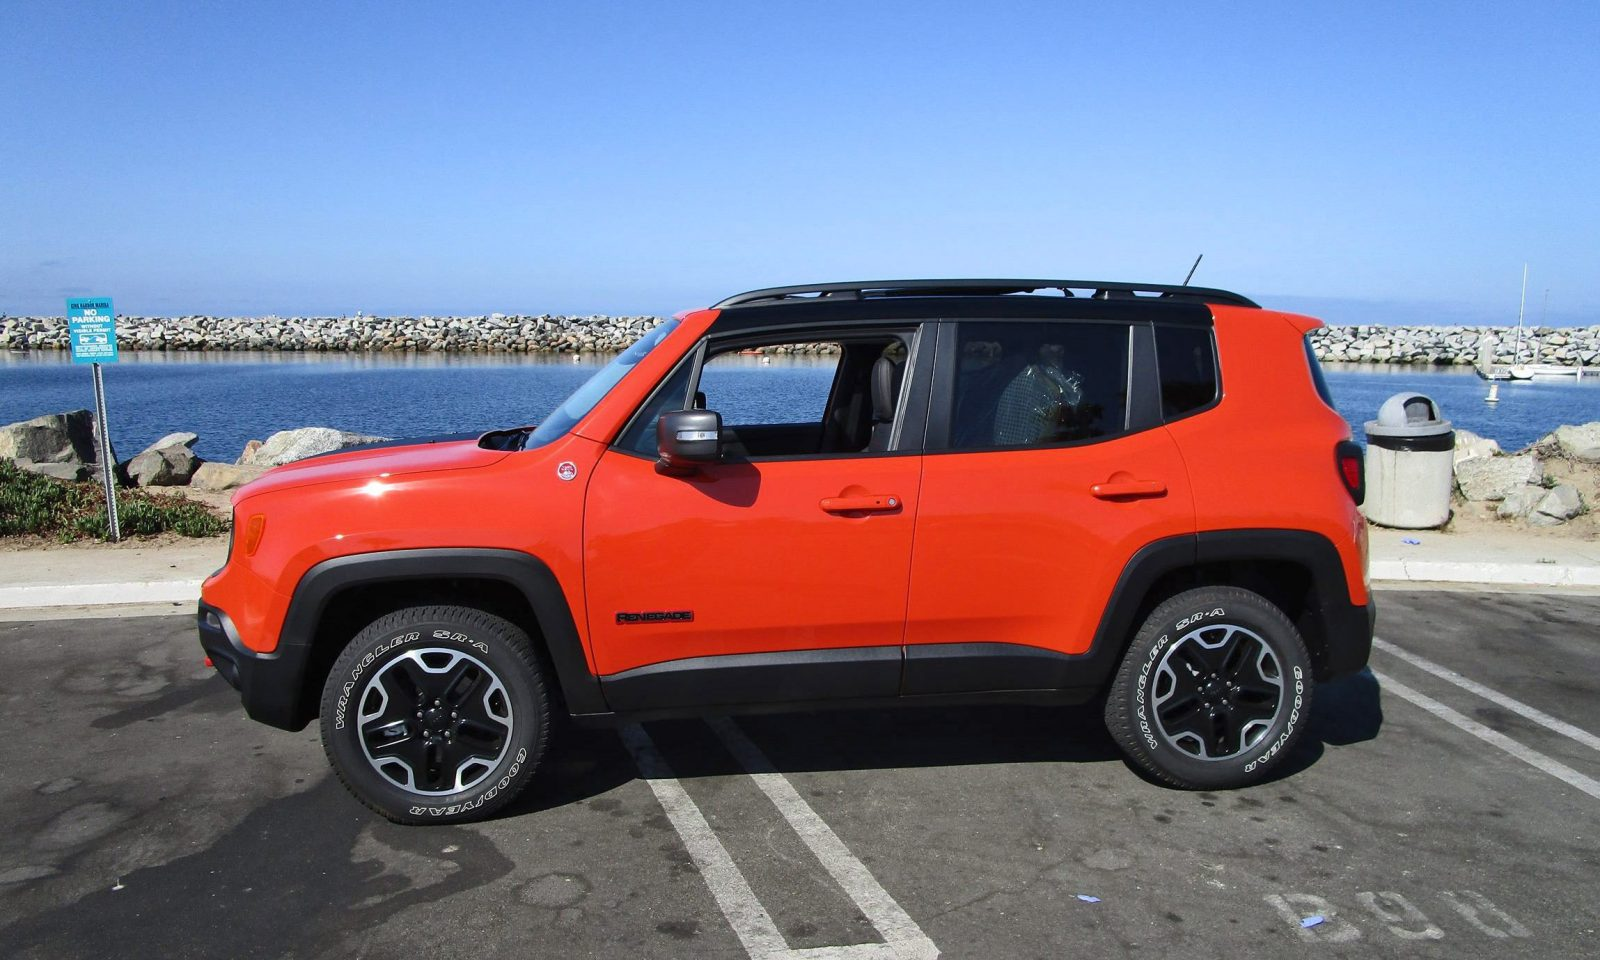 2016 jeep renegade trailhawk 4x4 road test review by ben lewis car revs. Black Bedroom Furniture Sets. Home Design Ideas